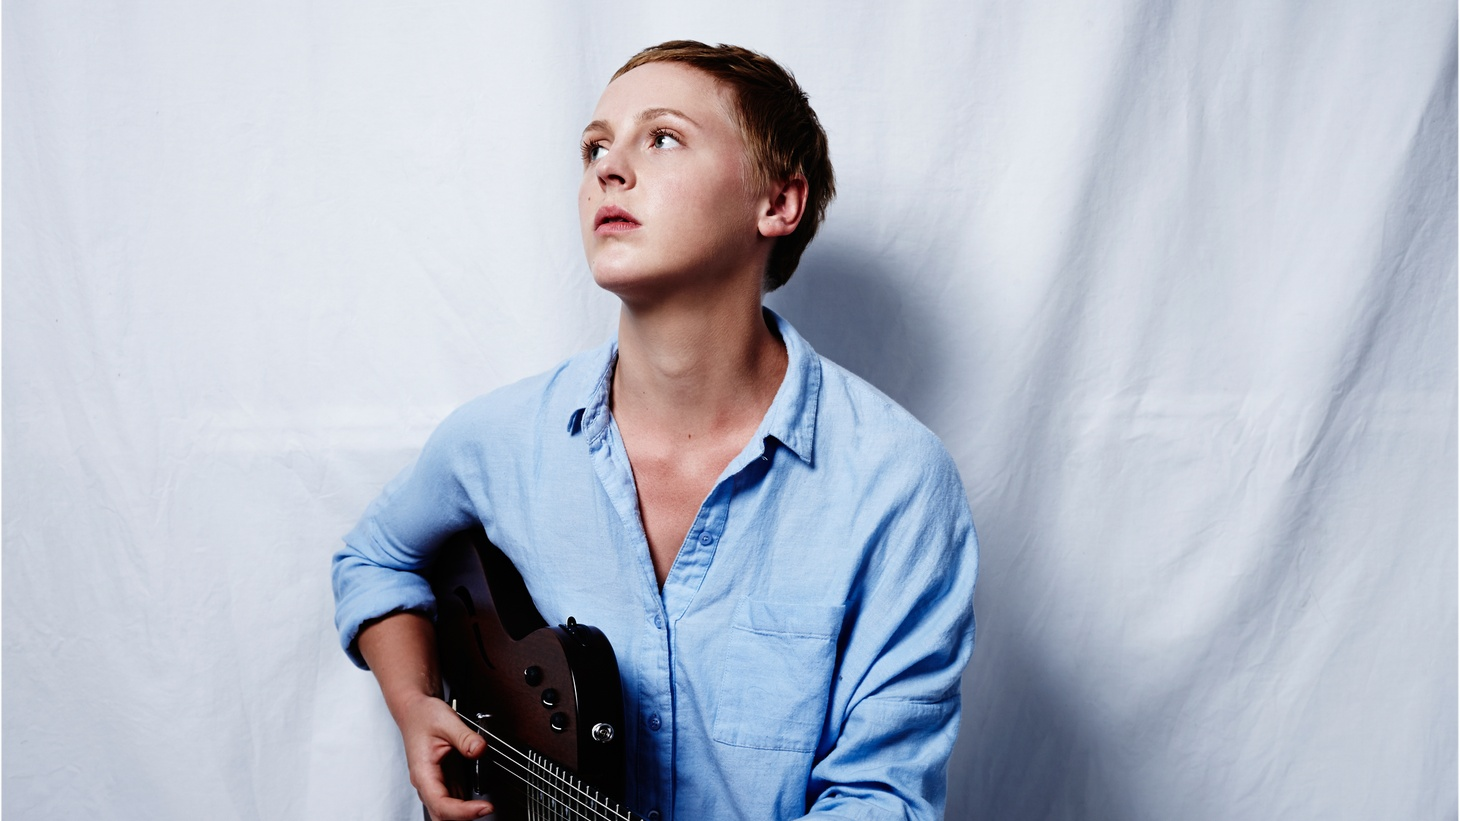 2015 brings a new year and a new album from the talented songwriter Laura Marling.